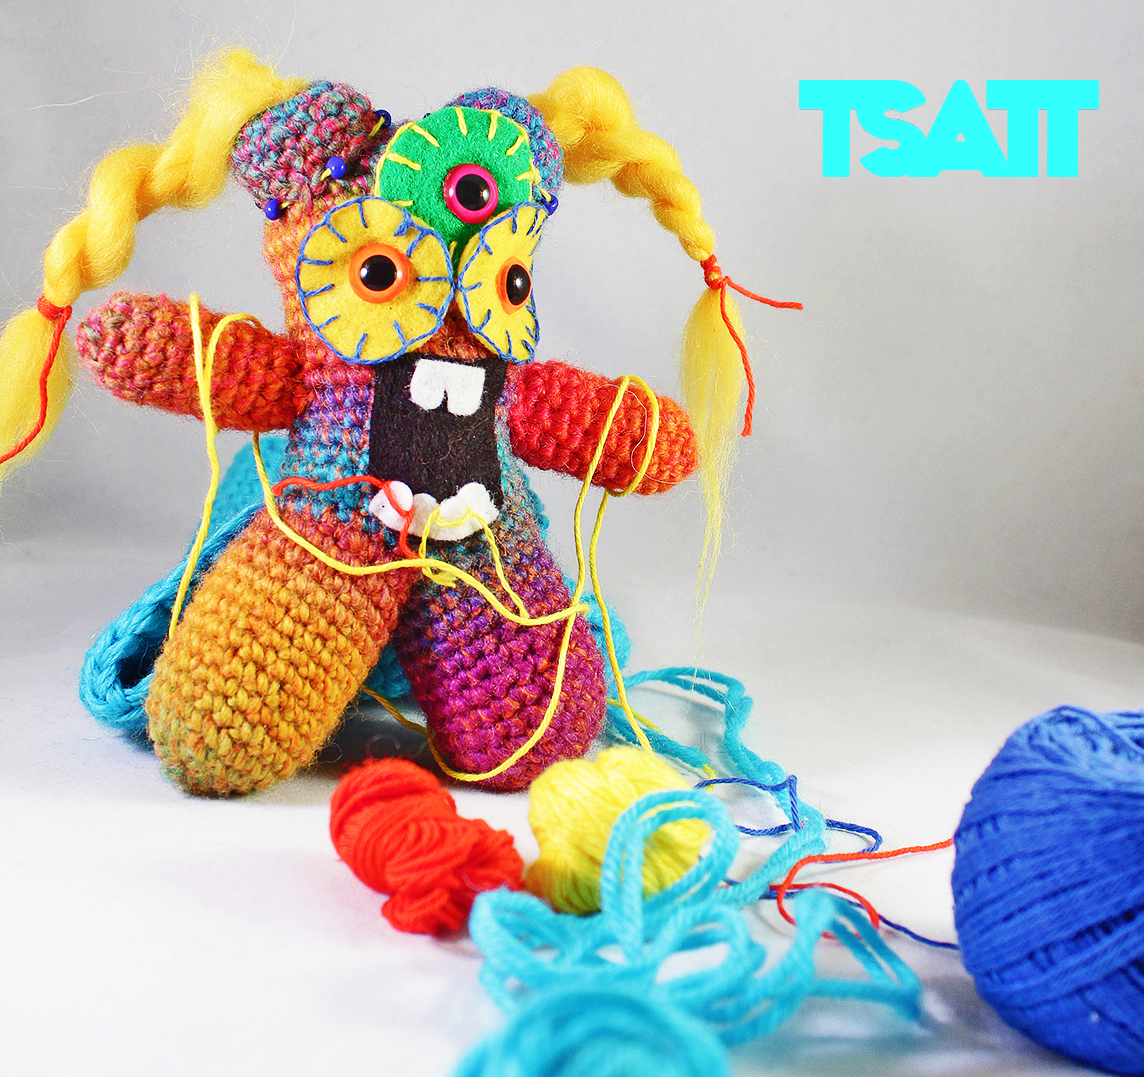 Amigurumi Change Yarn : Amigurumi monster the Yarn Disorganizer The Sun and the ...